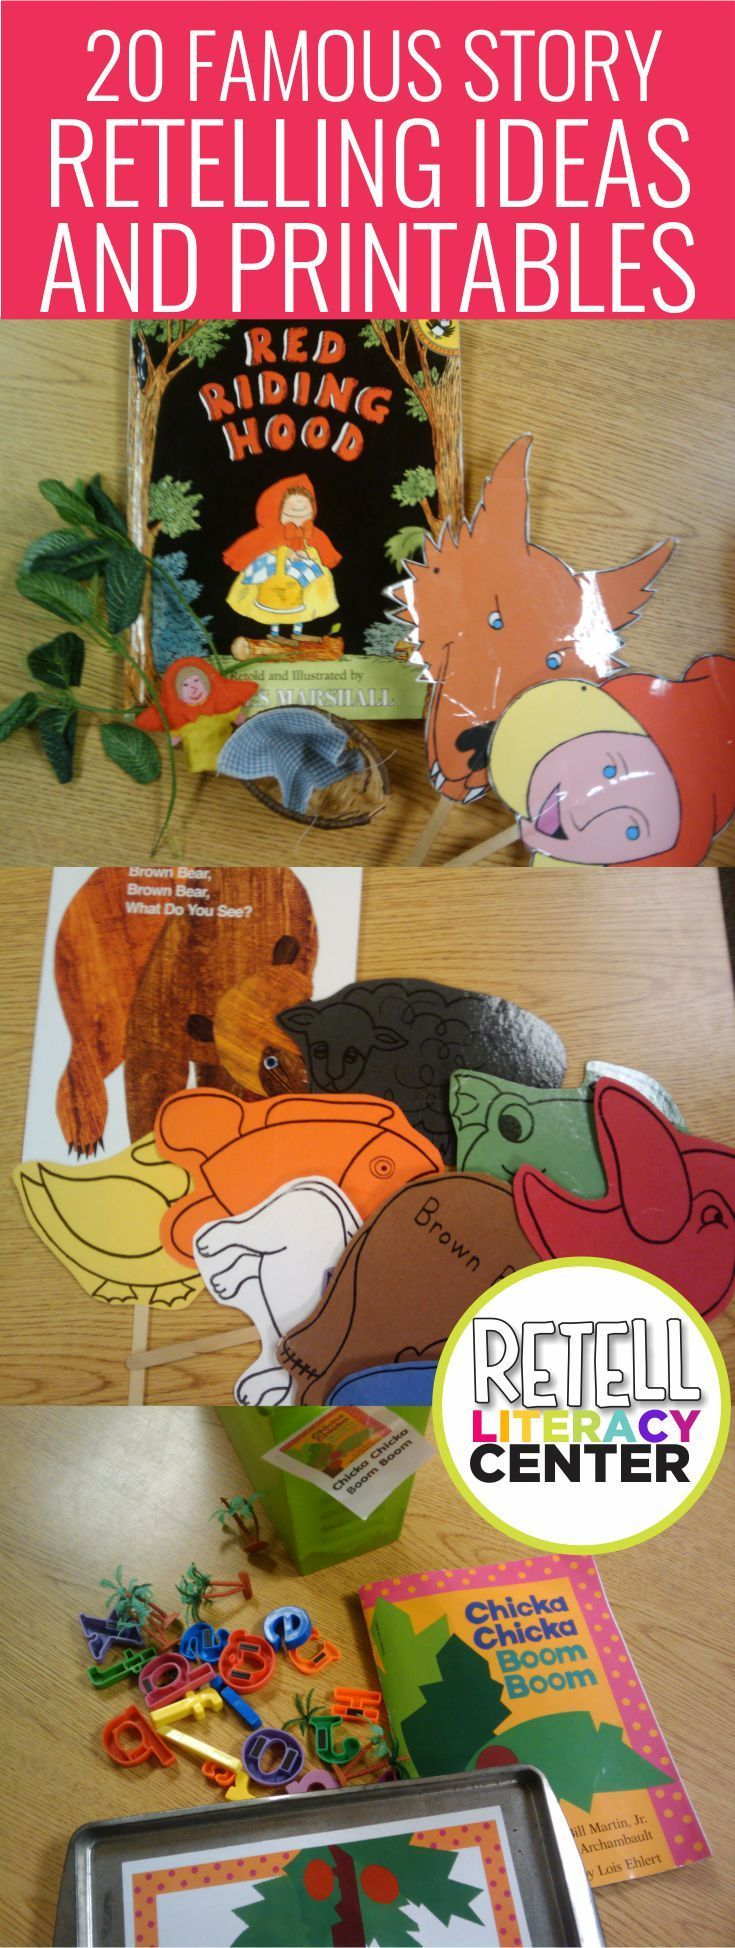 Literacy Center {20 Famous Story Retelling Ideas and Printables} 20 famous story retelling ideas and printables for kindergarten - I love these... I could easily make these a literacy center that'd last the whole year20 famous story retelling ideas and printables for kindergarten - I love these... I could easily make these a literacy center that'd last the w...